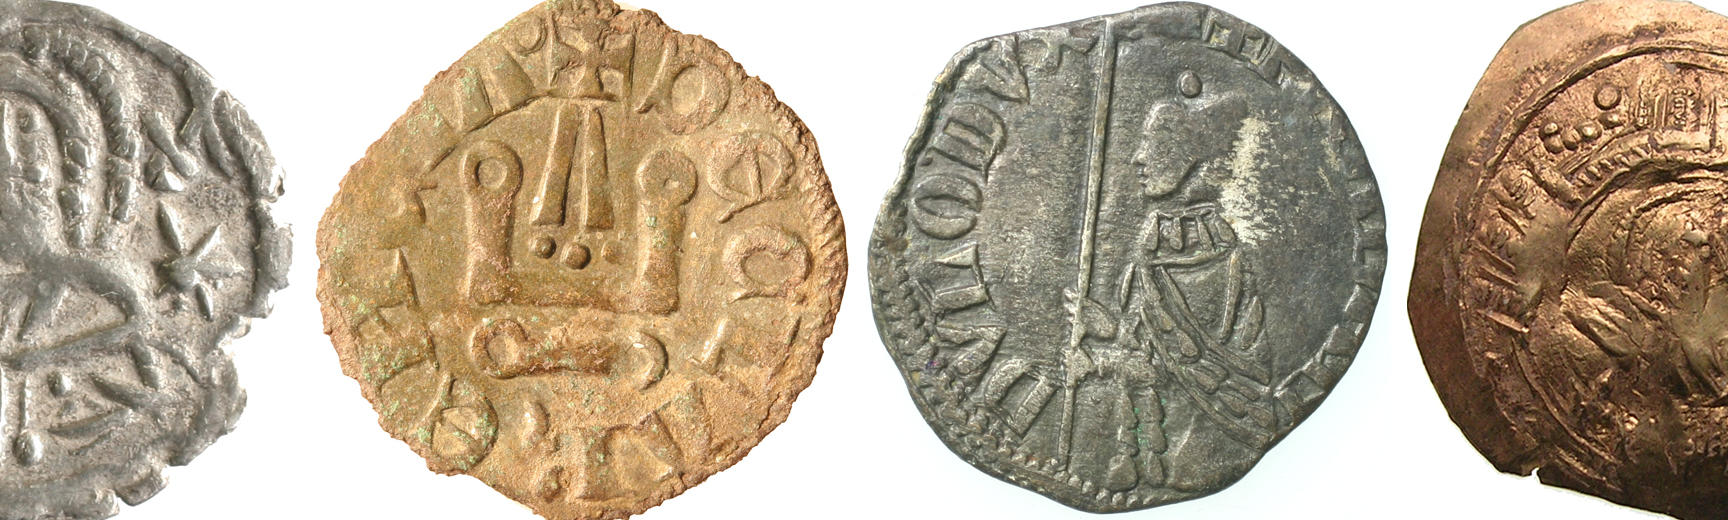 Money in 14th century Constantinople